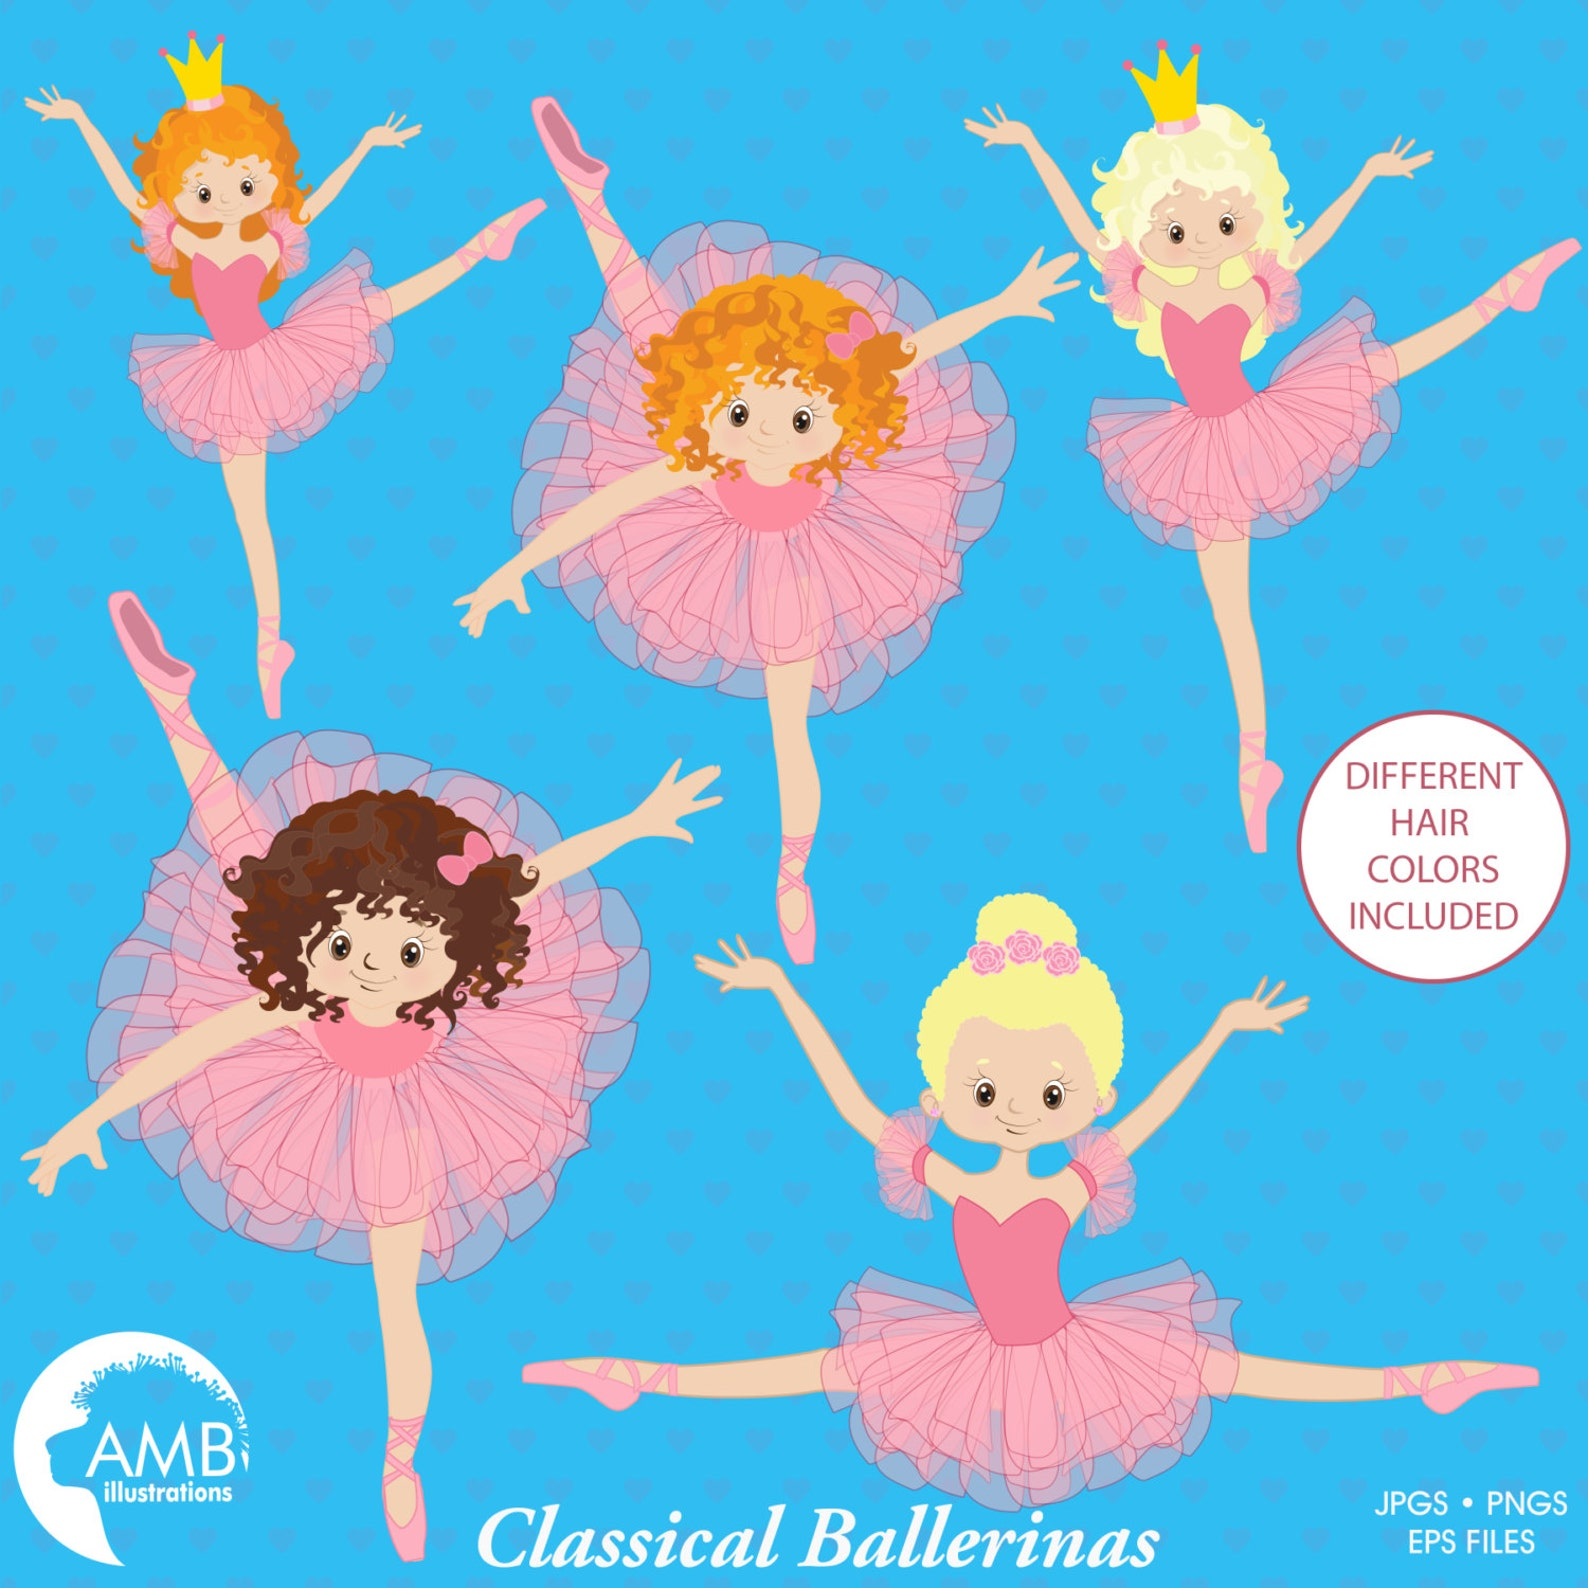 ballerinas dancing, clipart illustration, ballet dancers in pink, ballet recital clipart, commercial use, amb-1050